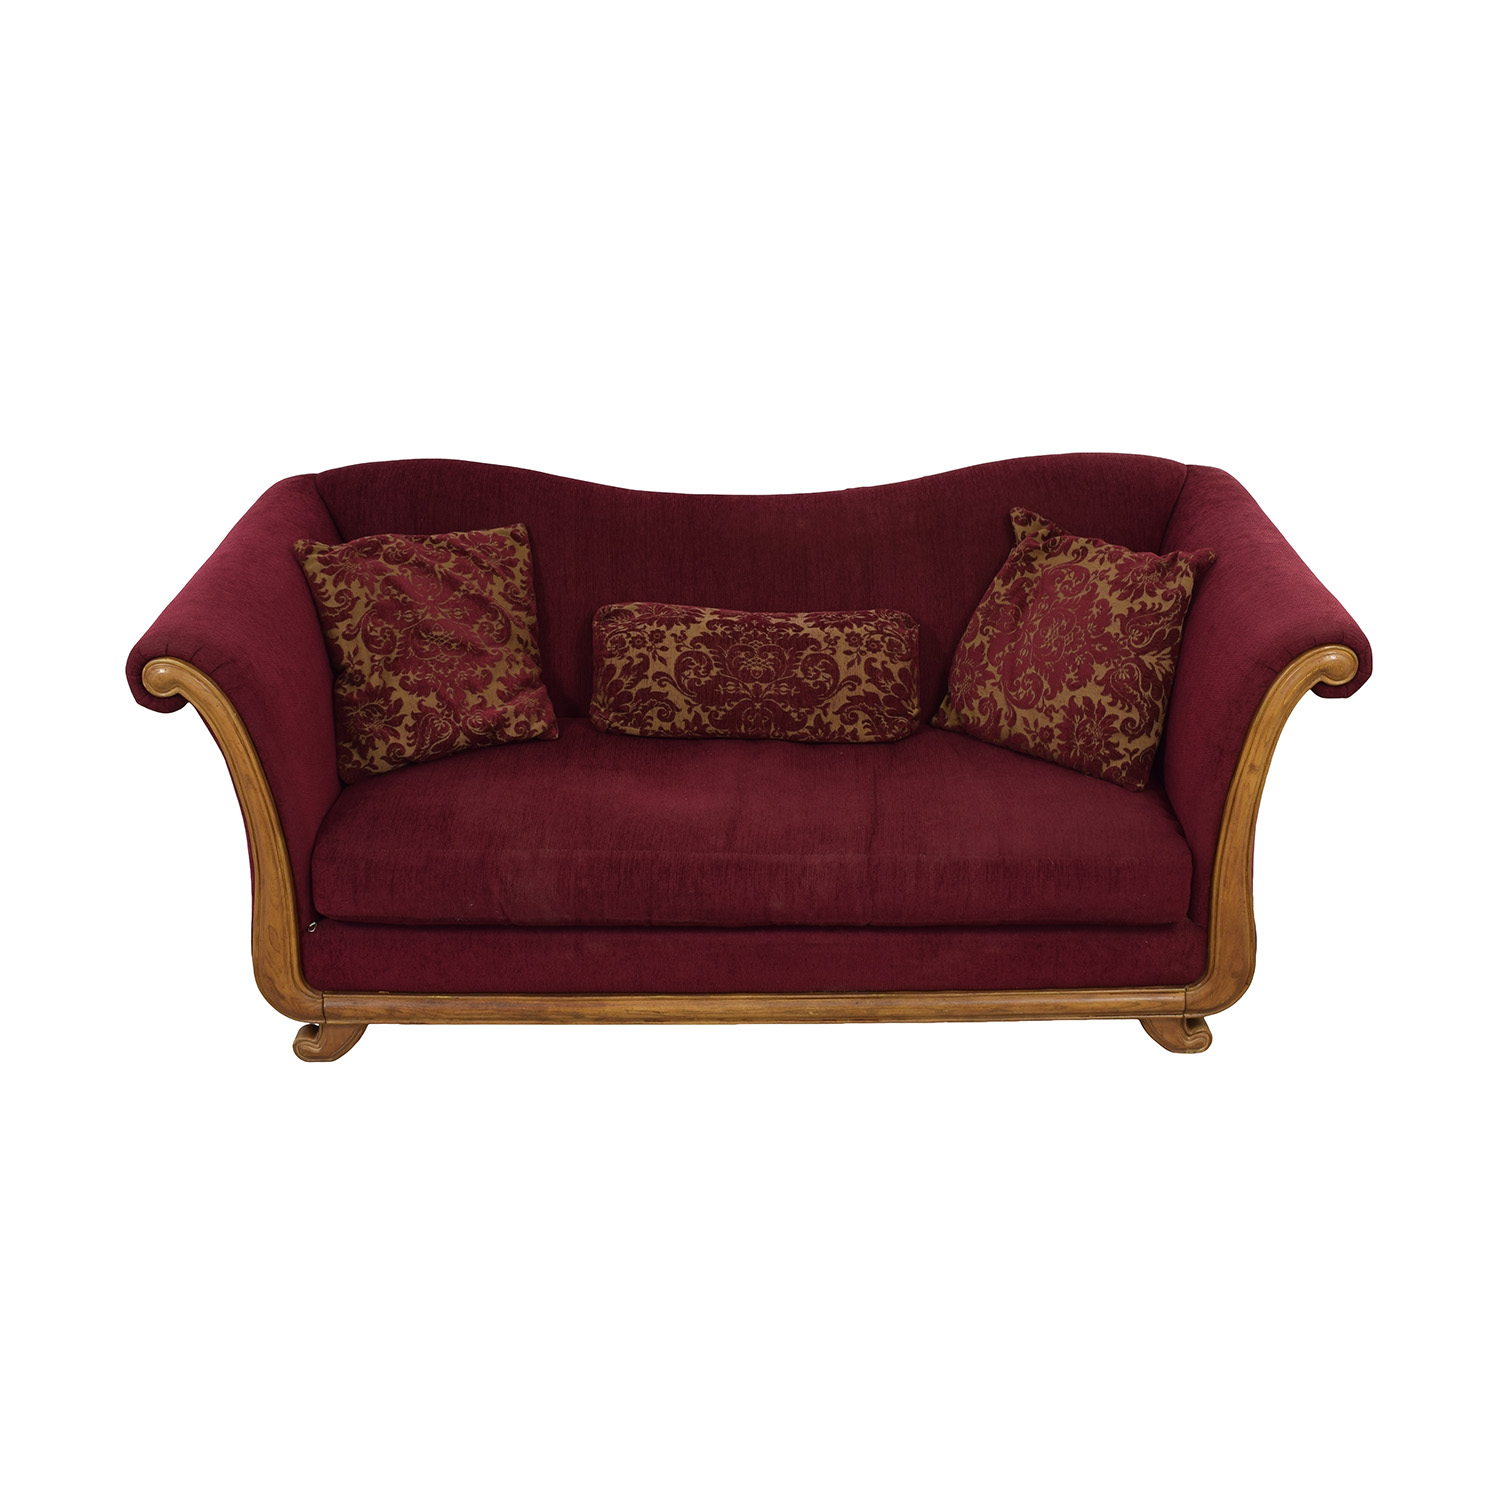 shop Bernhardt Maroon Single-Cushion Camel Back Sofa Bernhardt